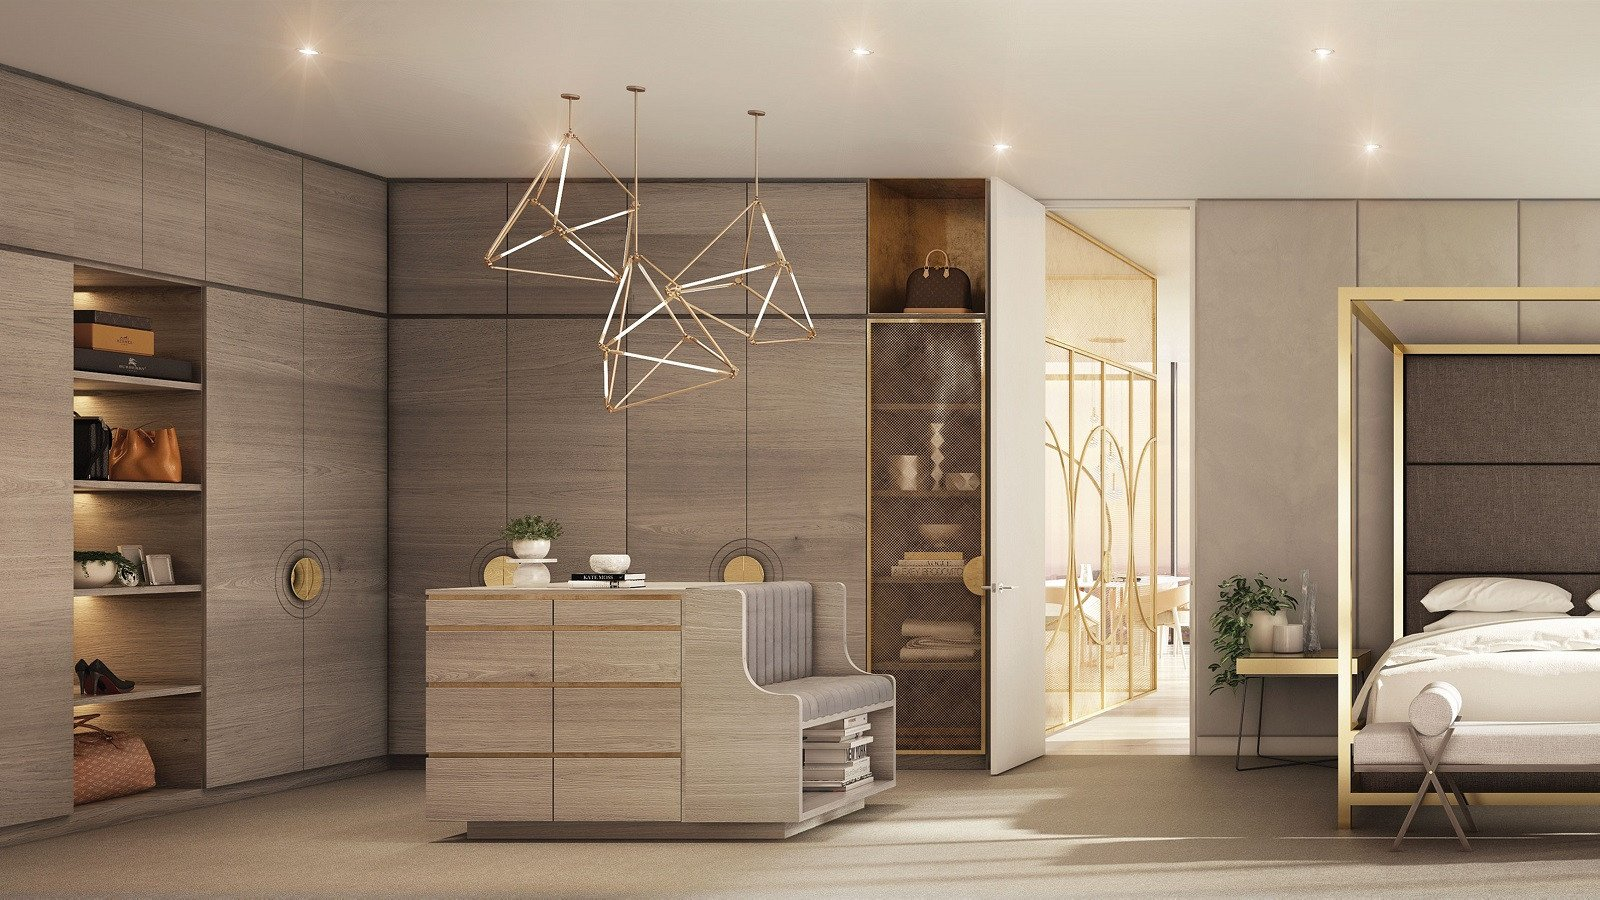 Realm Apartments-image-15